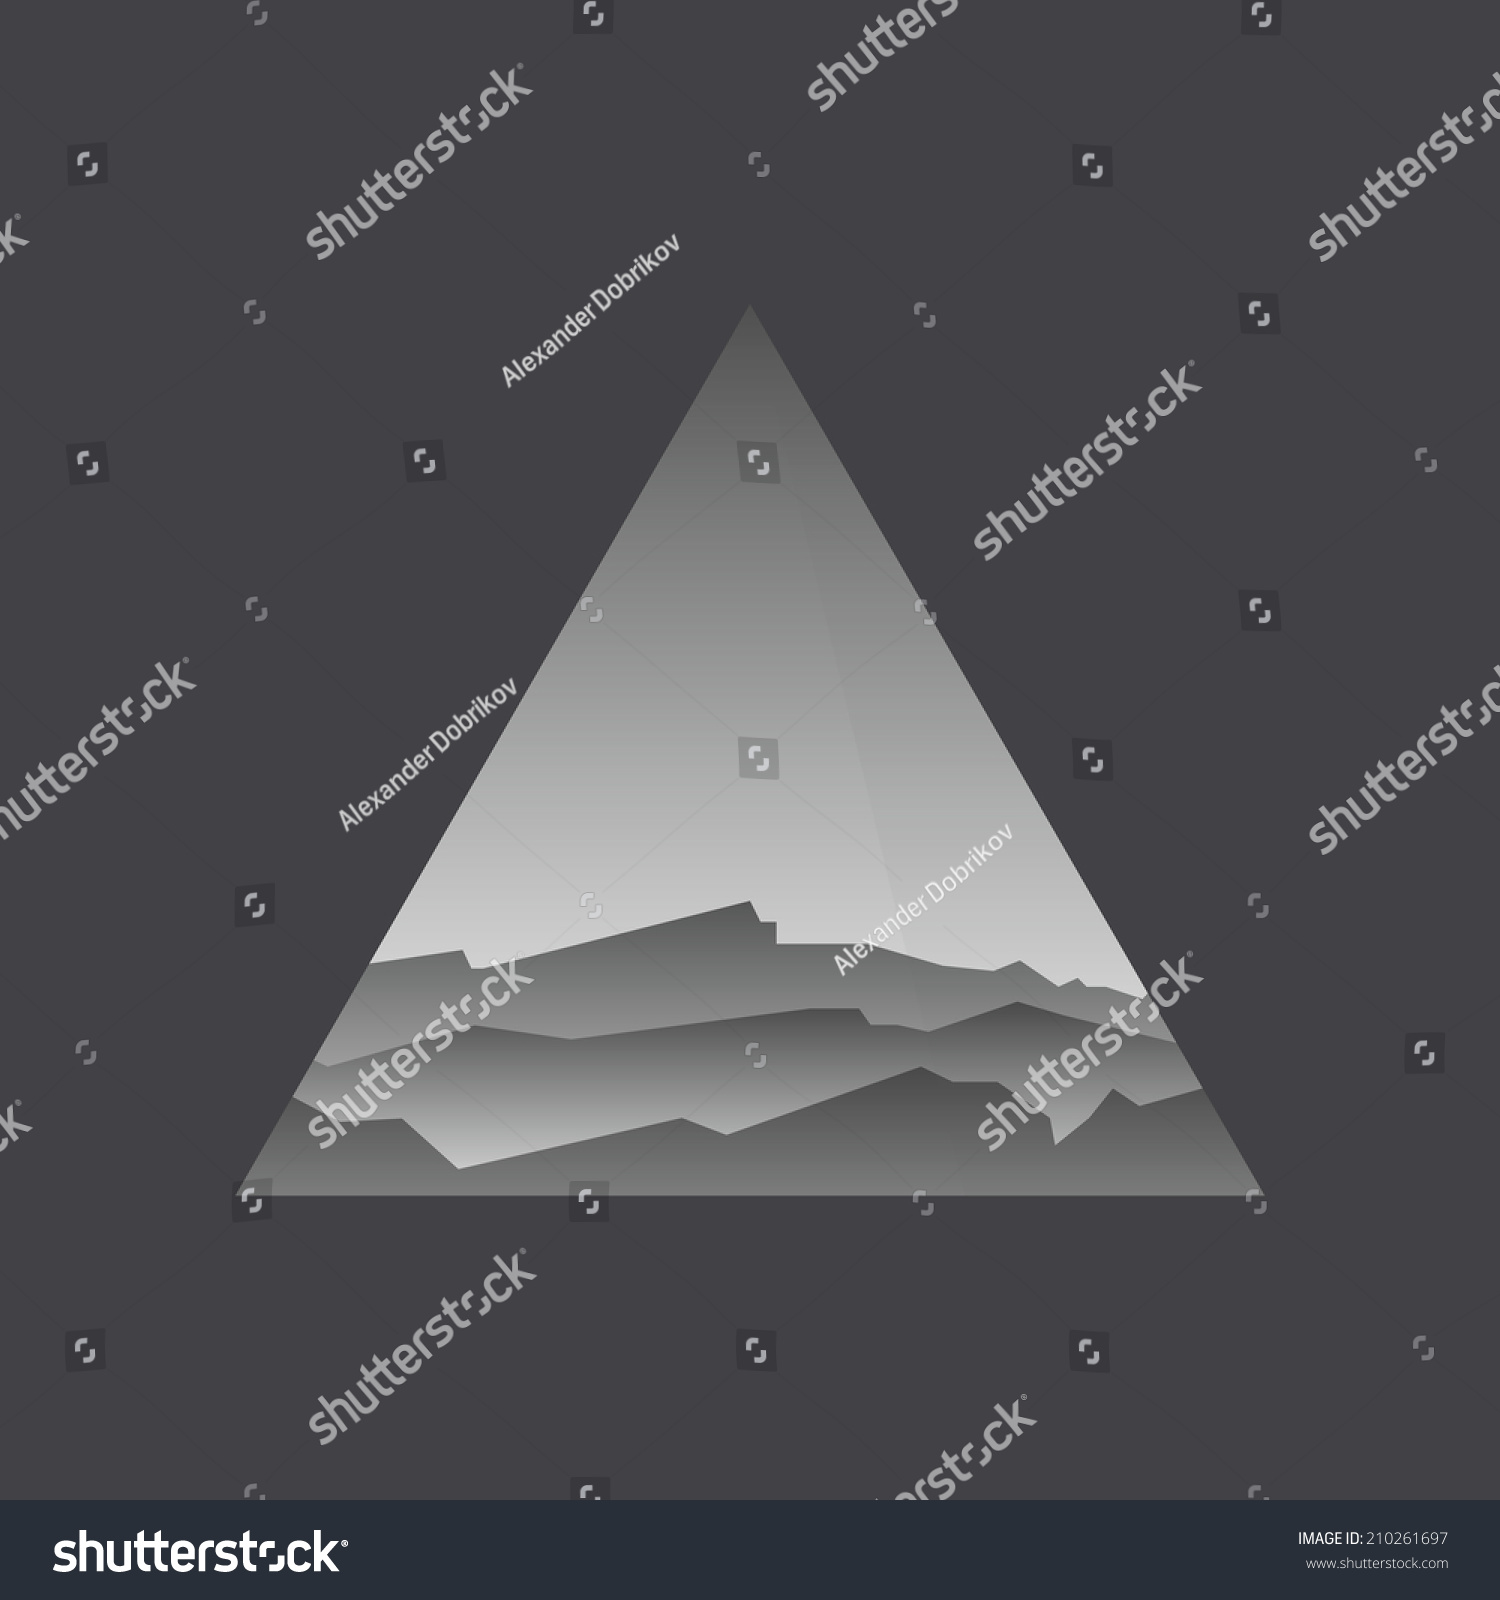 Triangle symbol with landscape black and white concept for Triangle concept architecture